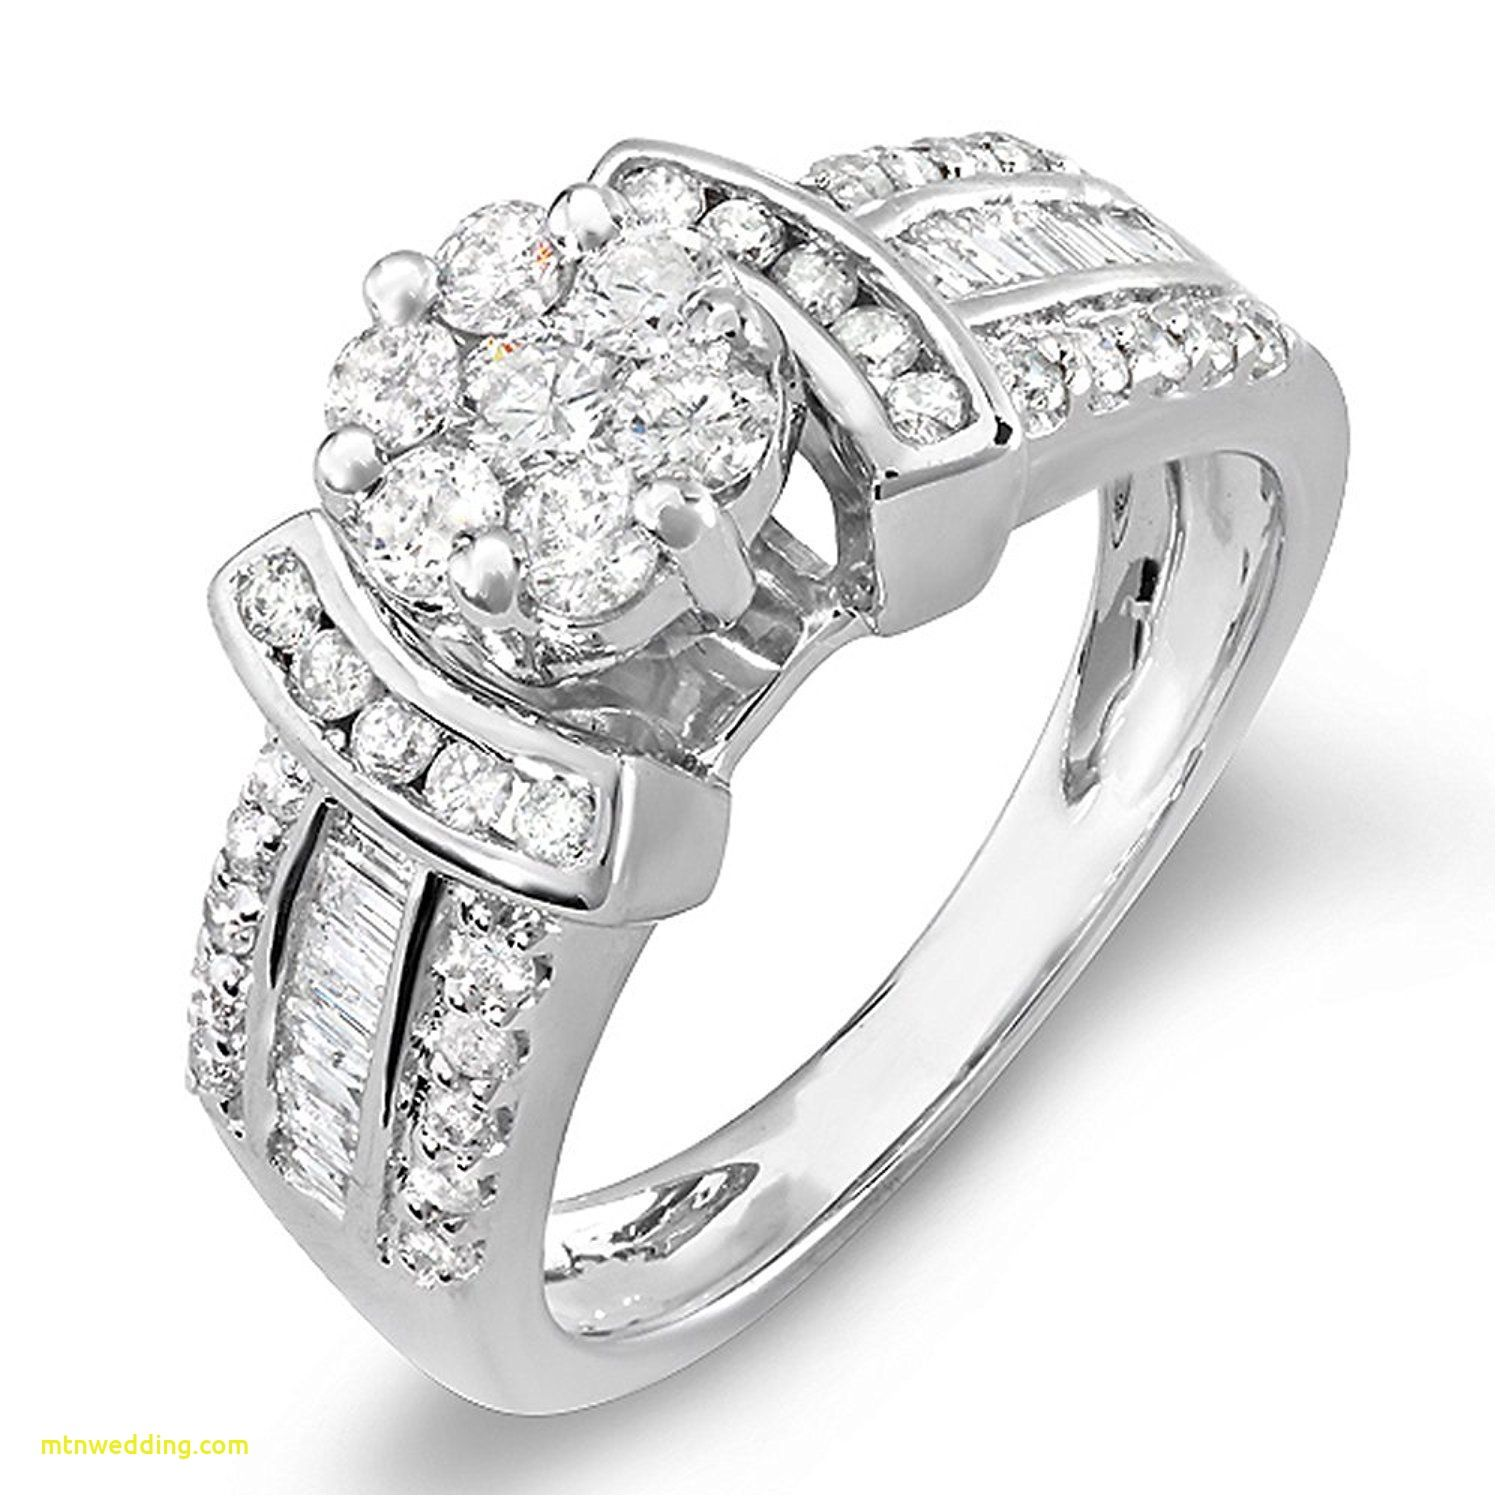 Best Of 40 Thousand Dollar Engagement Ring